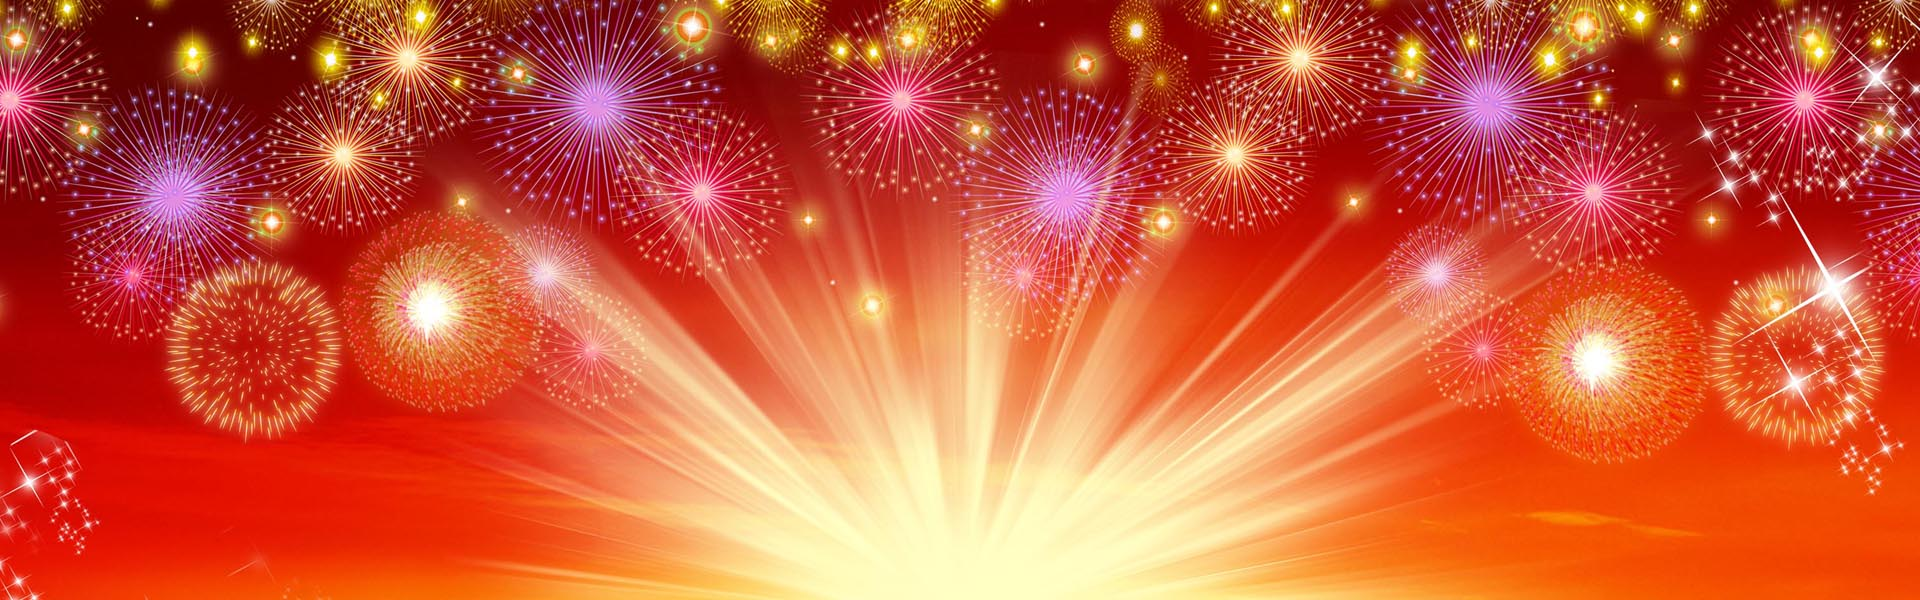 fantasy fireworks light effect background material  banner